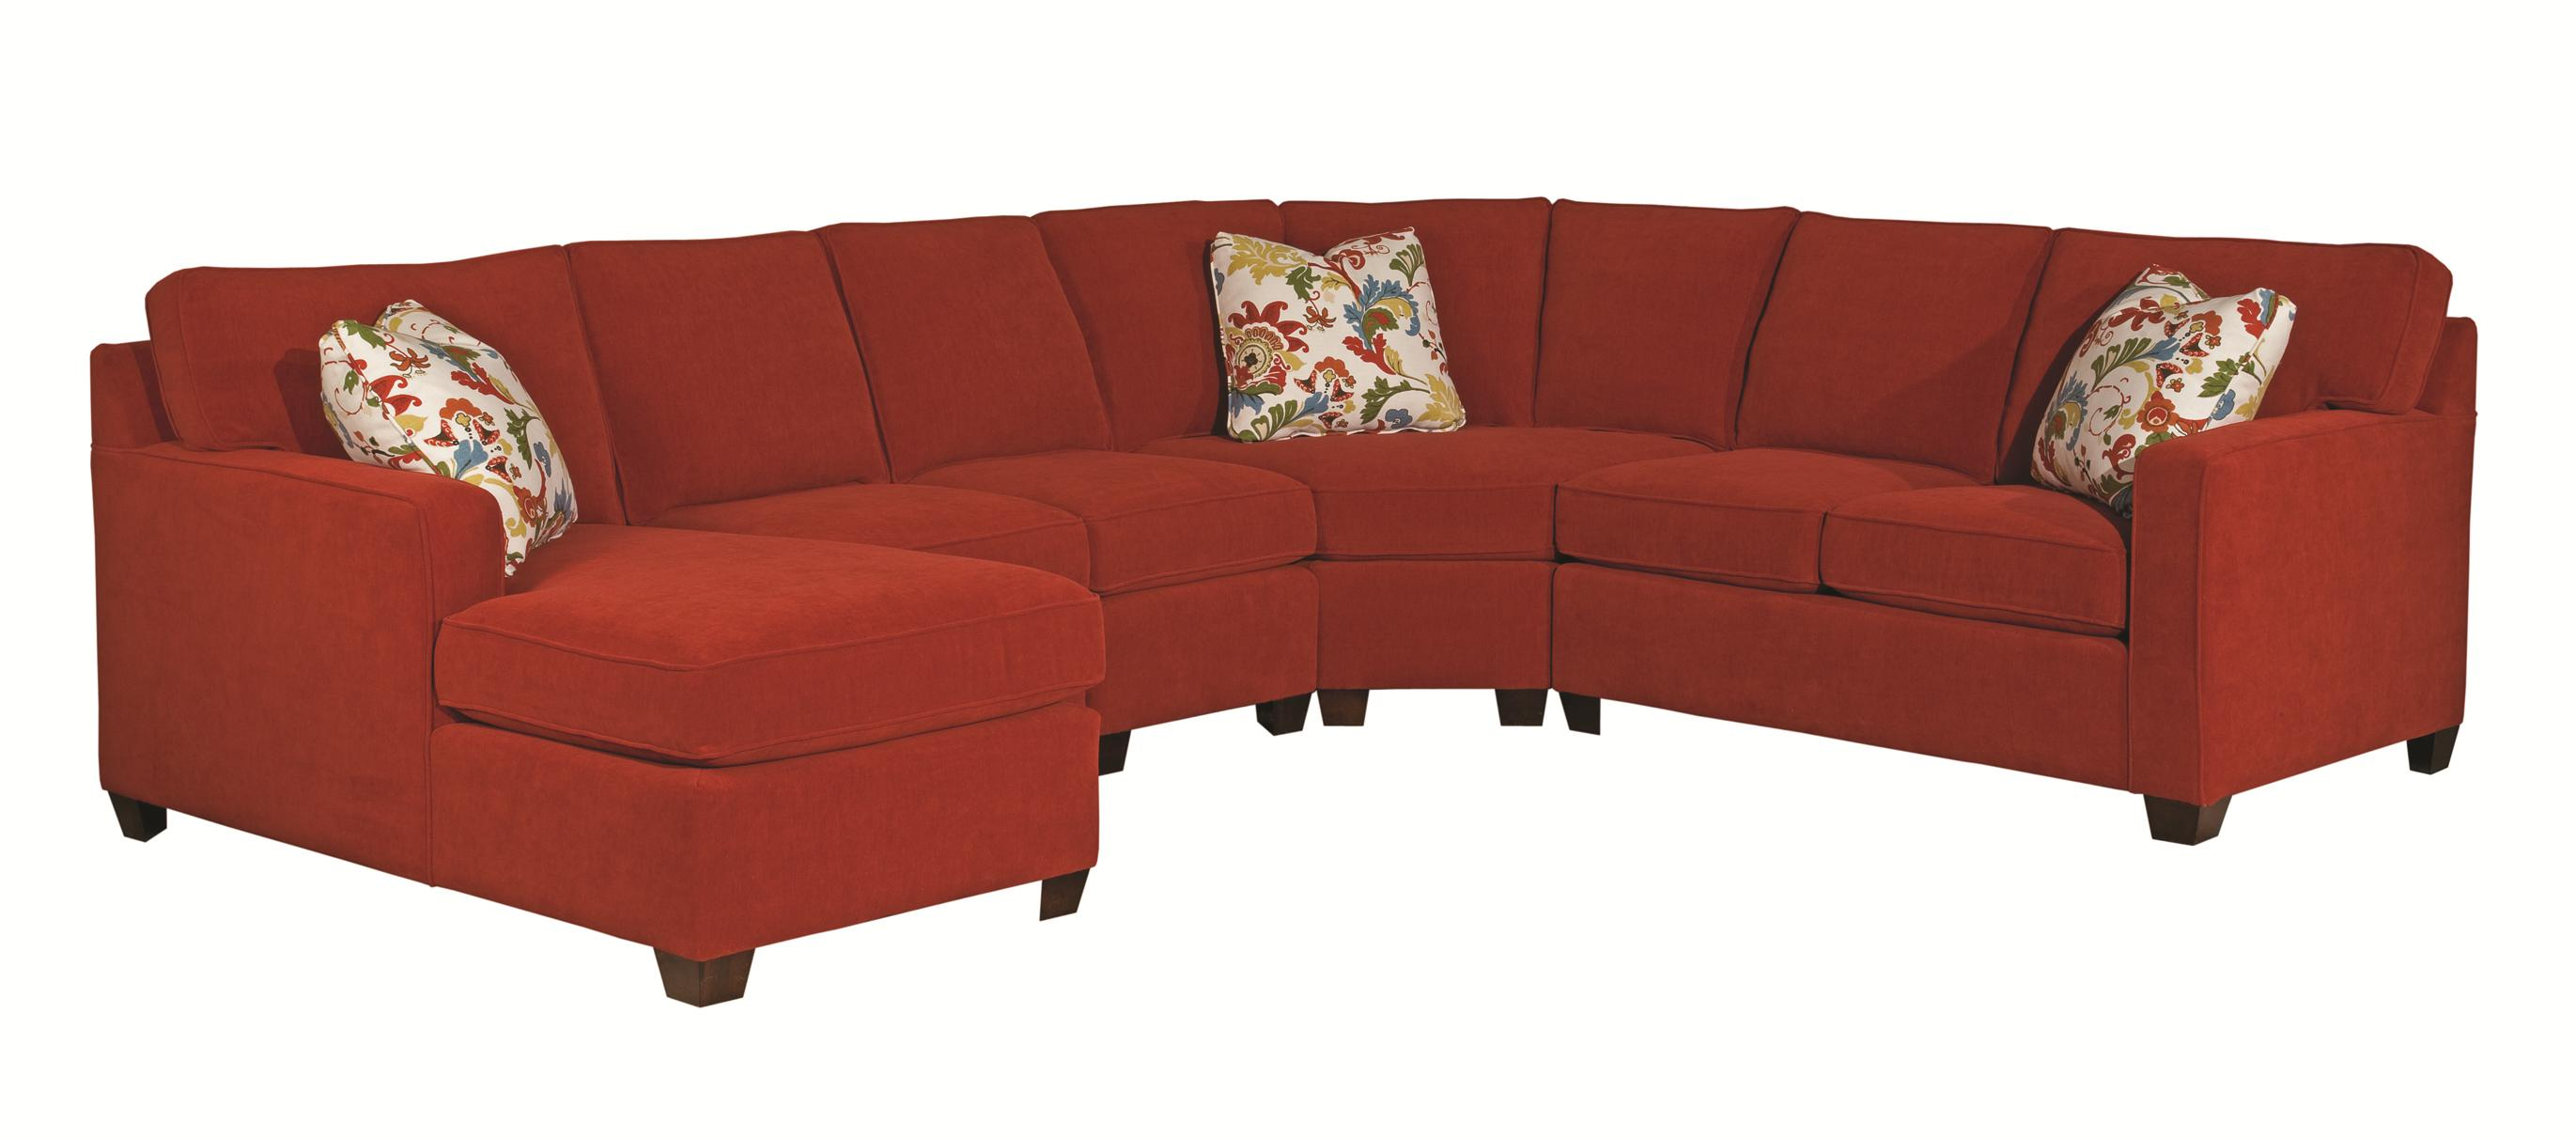 Five Piece Sectional Sofa By Kincaid Furniture Wolf And Gardiner  ~ Five Piece Sectional Sofa